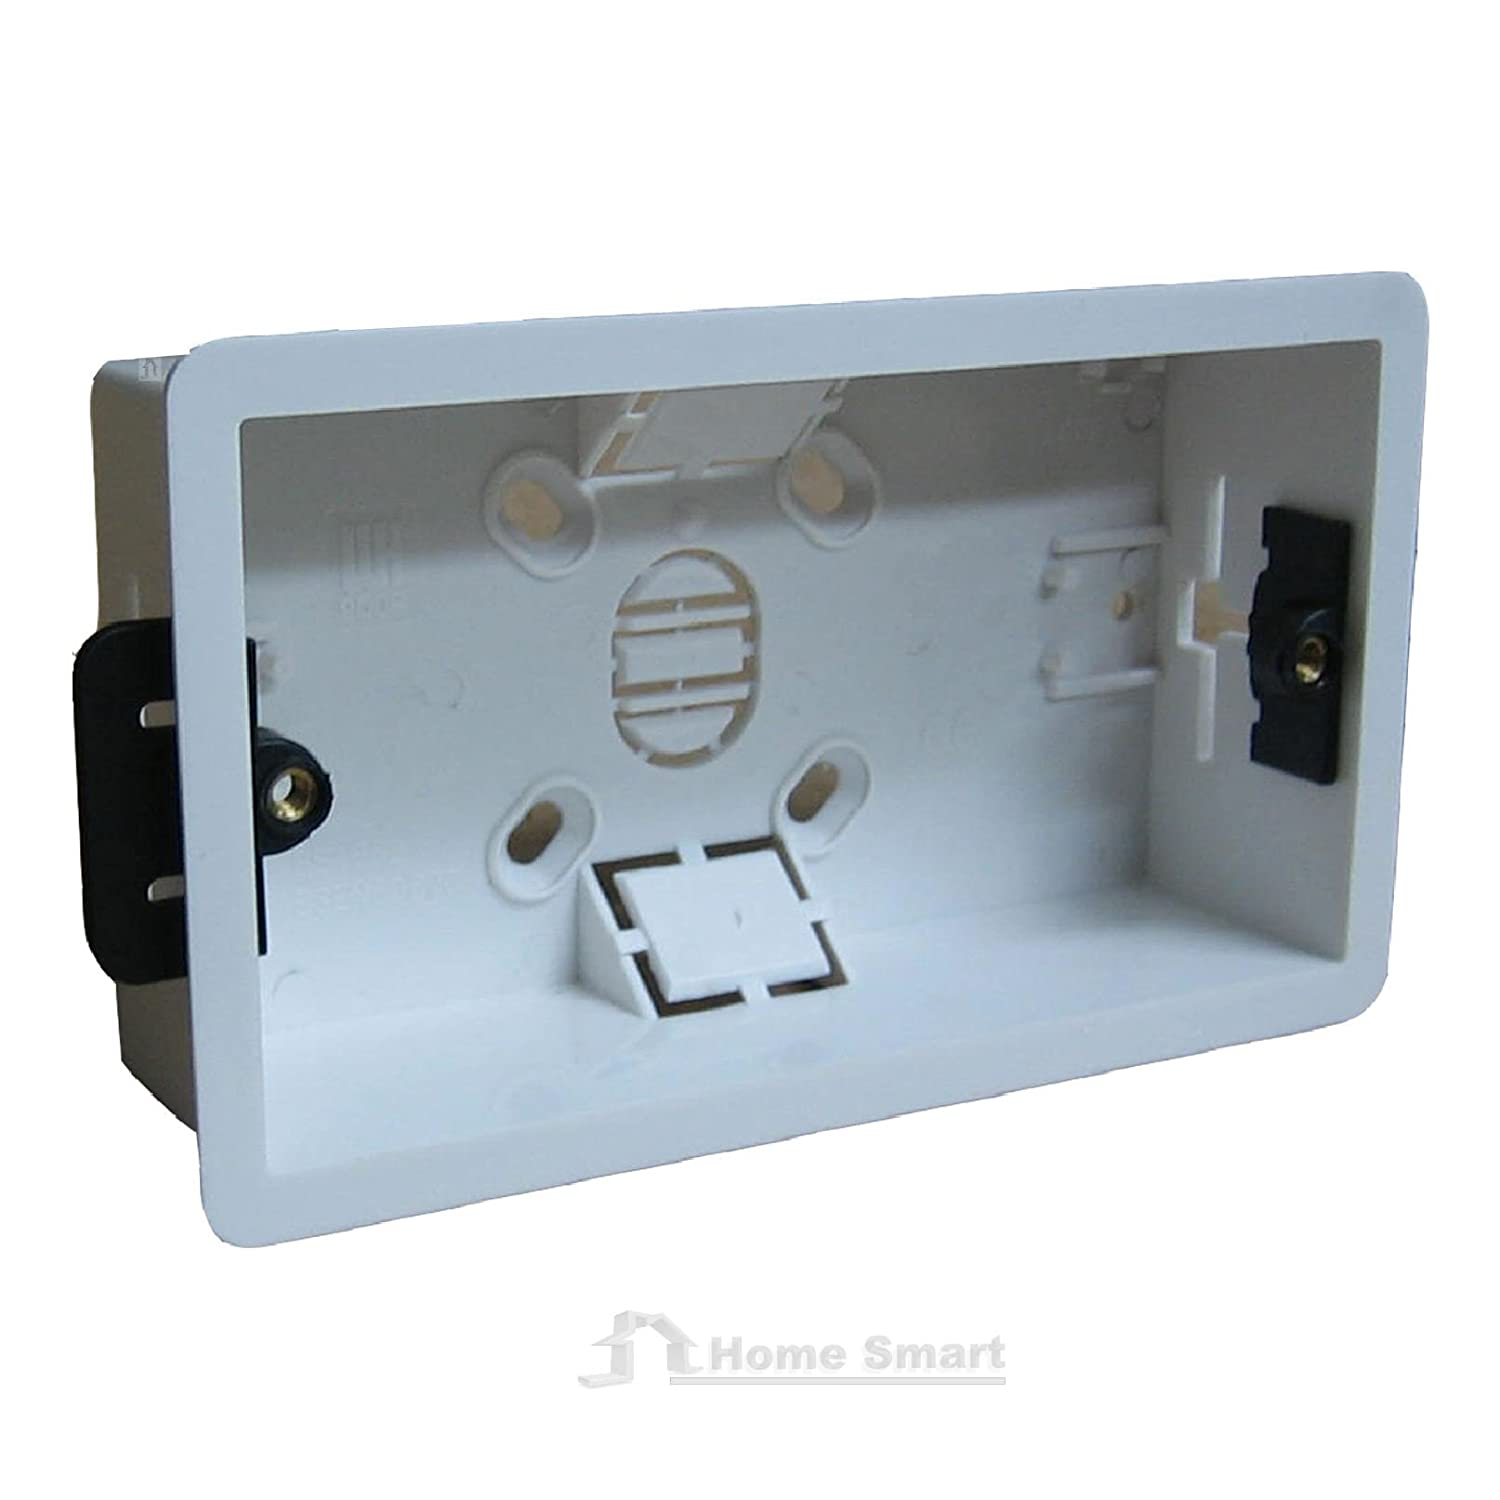 Dry Lining Back Box Flush Wall Pattress Double 2 Gang Electrical ...